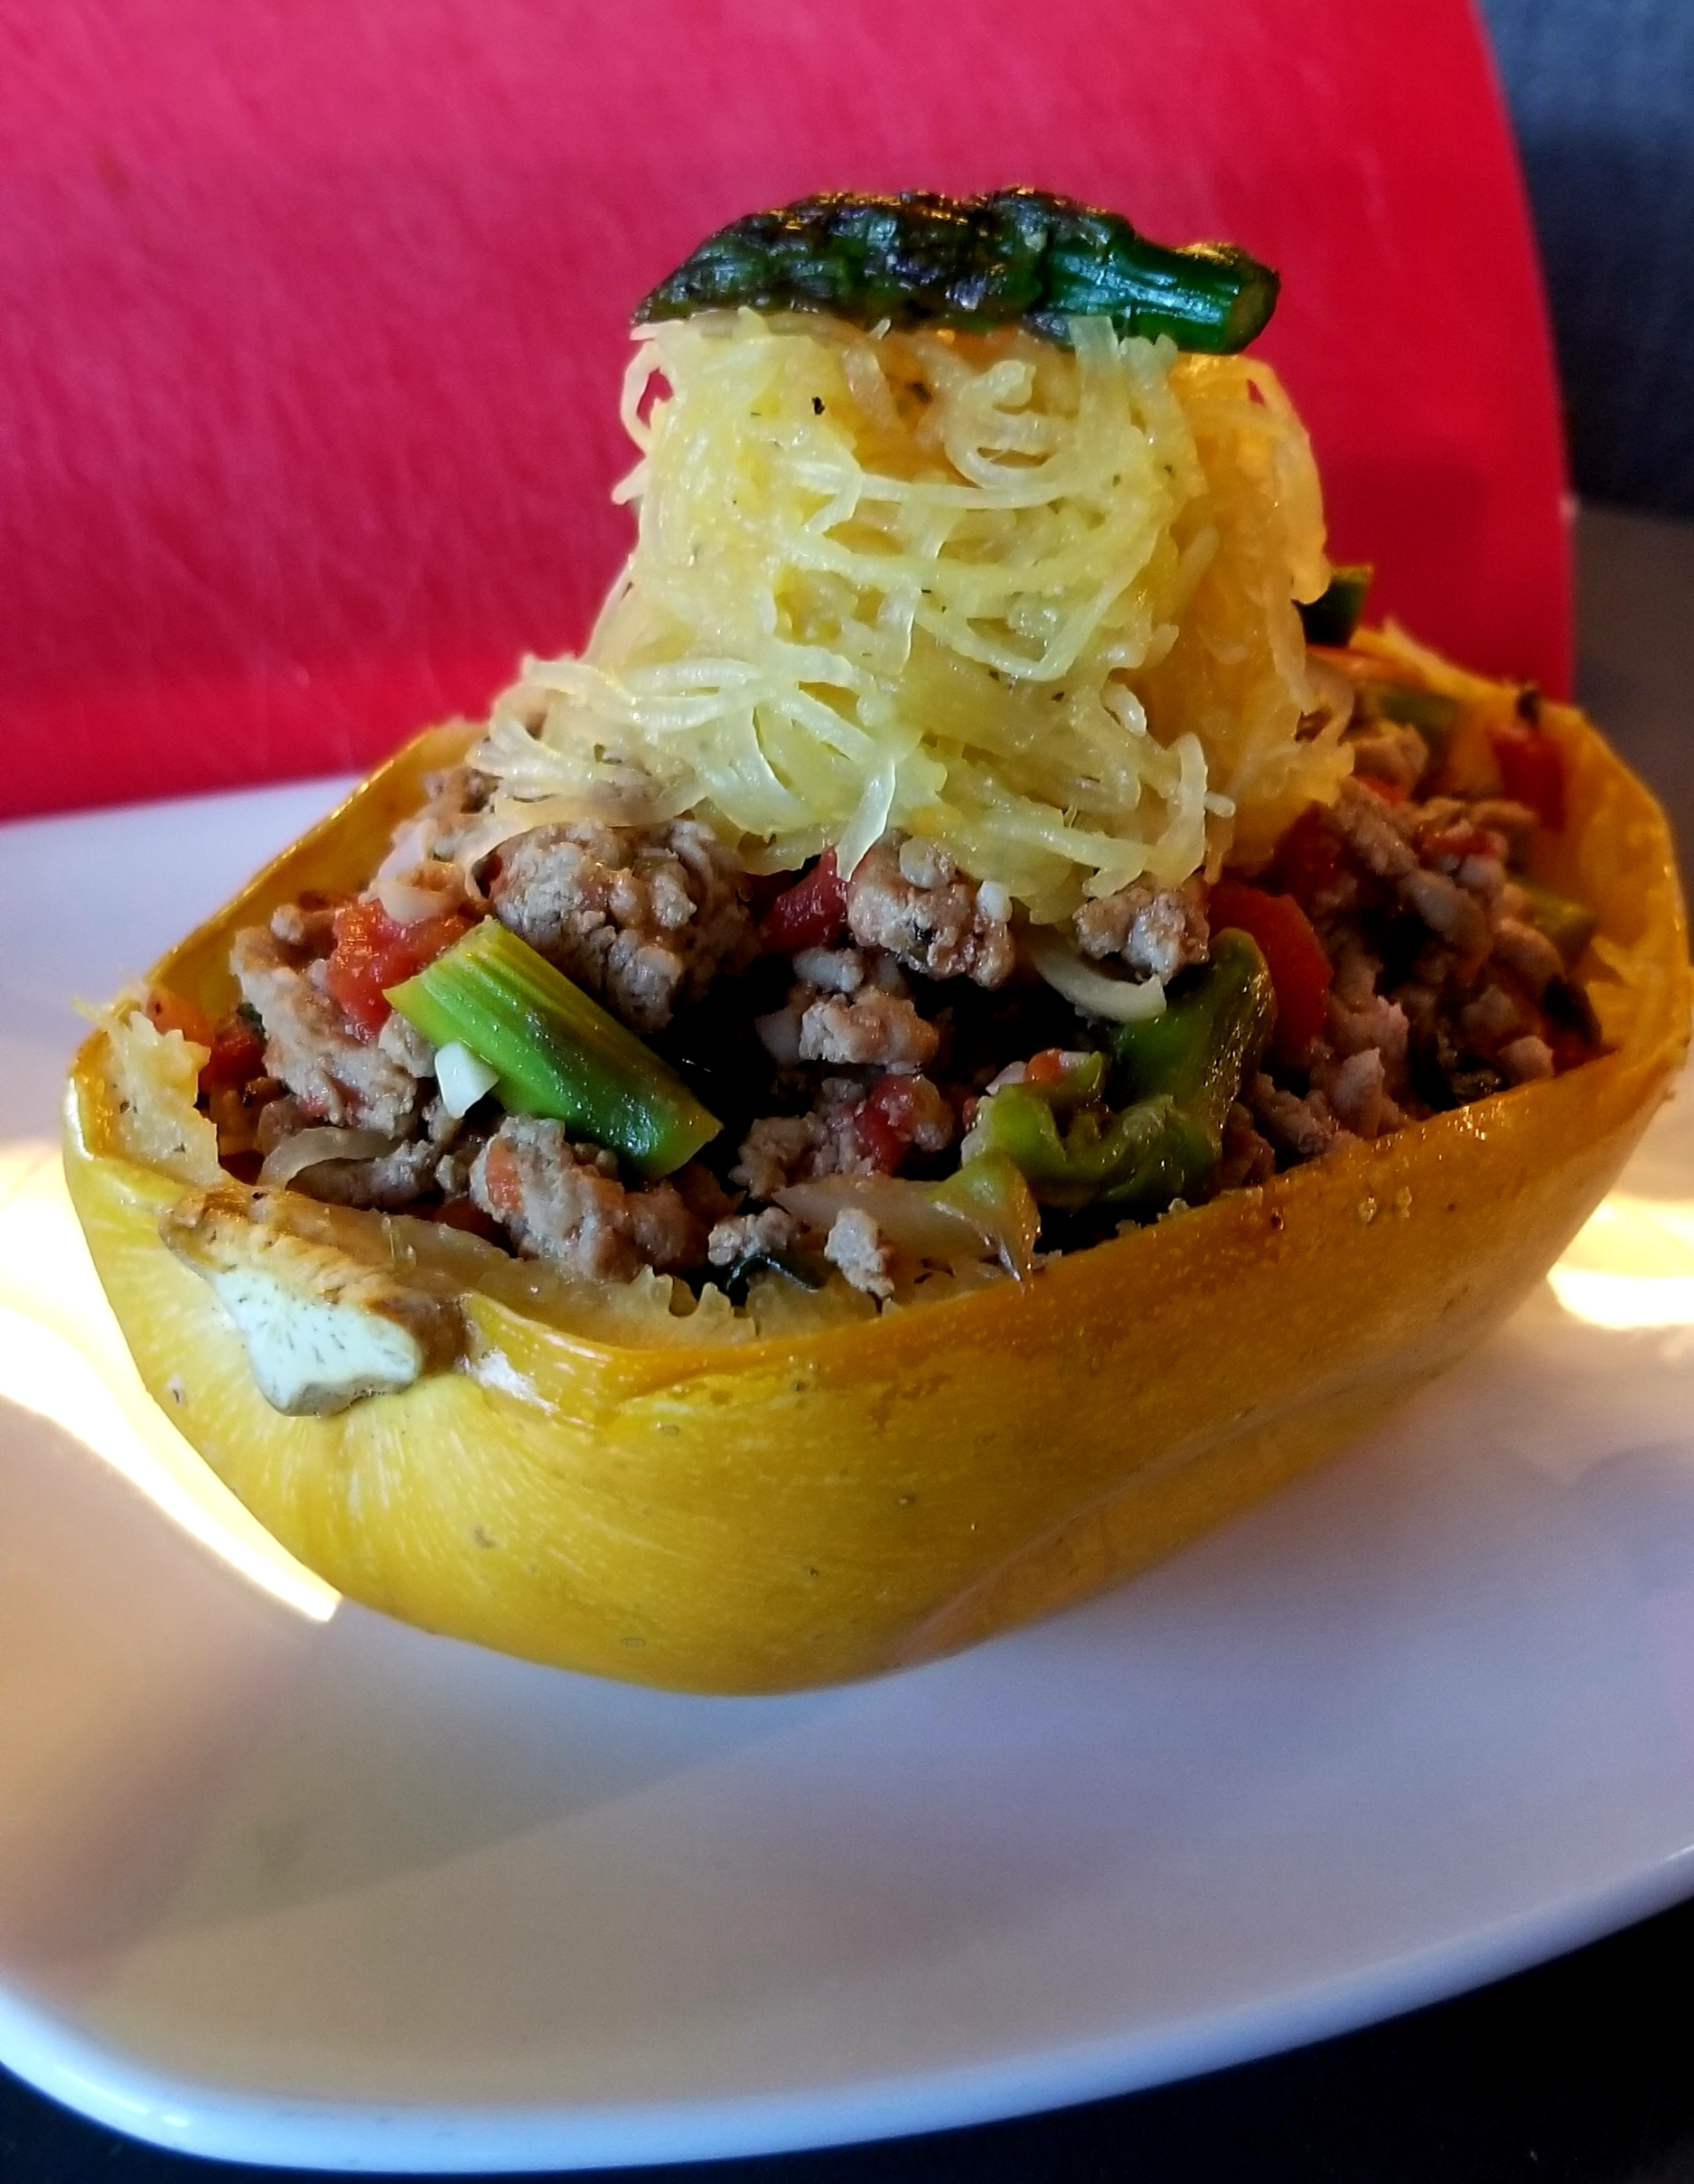 Roasted Spaghetti Squash with Ground Turkey and Vegetables